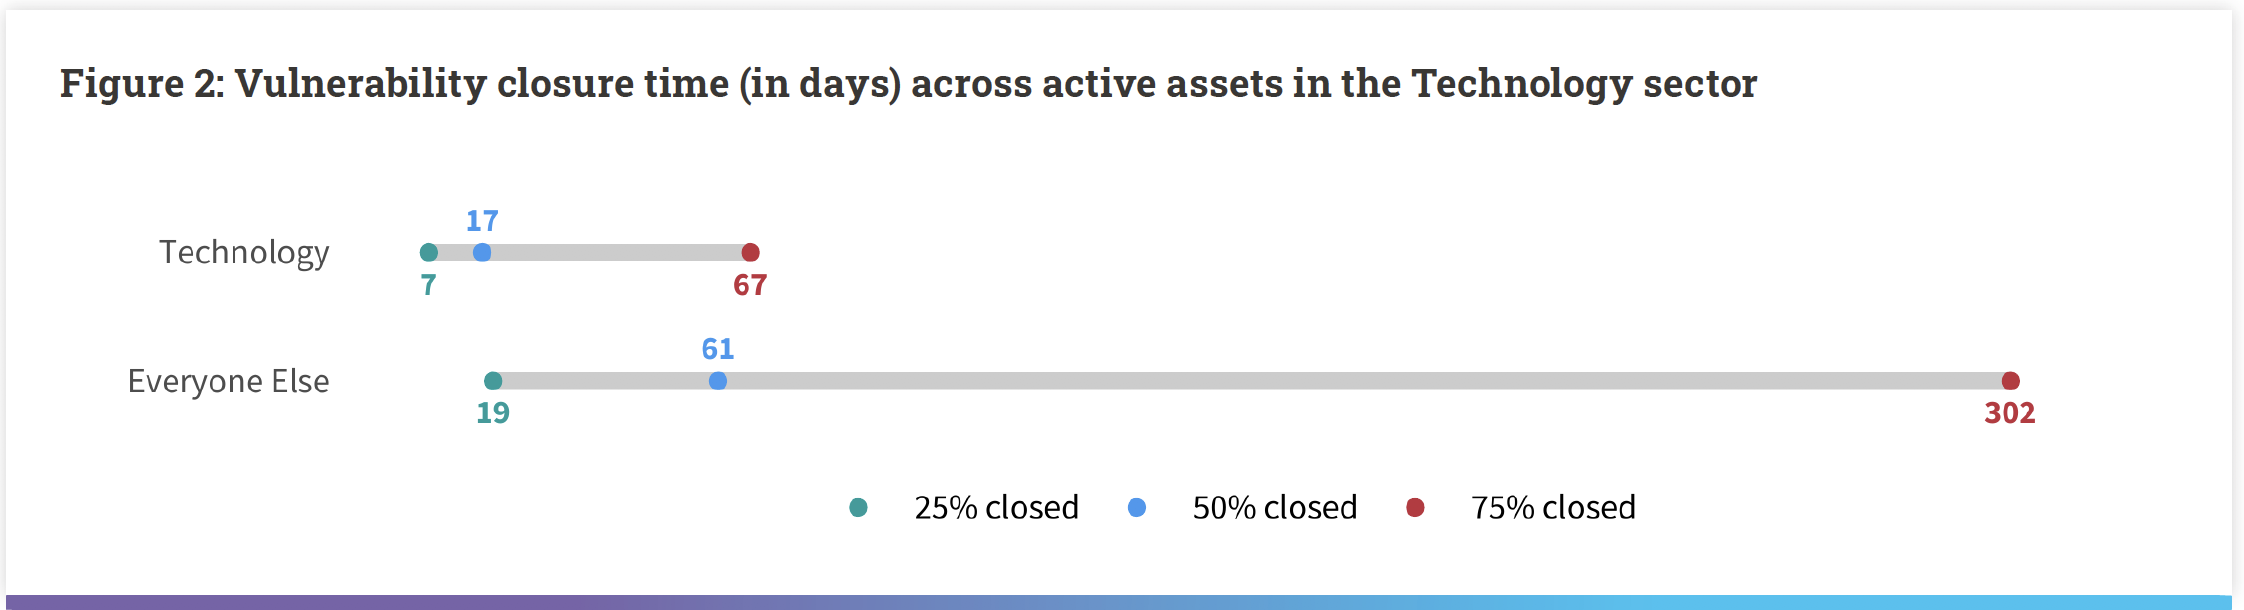 vuln closure time across active assets in tech sector